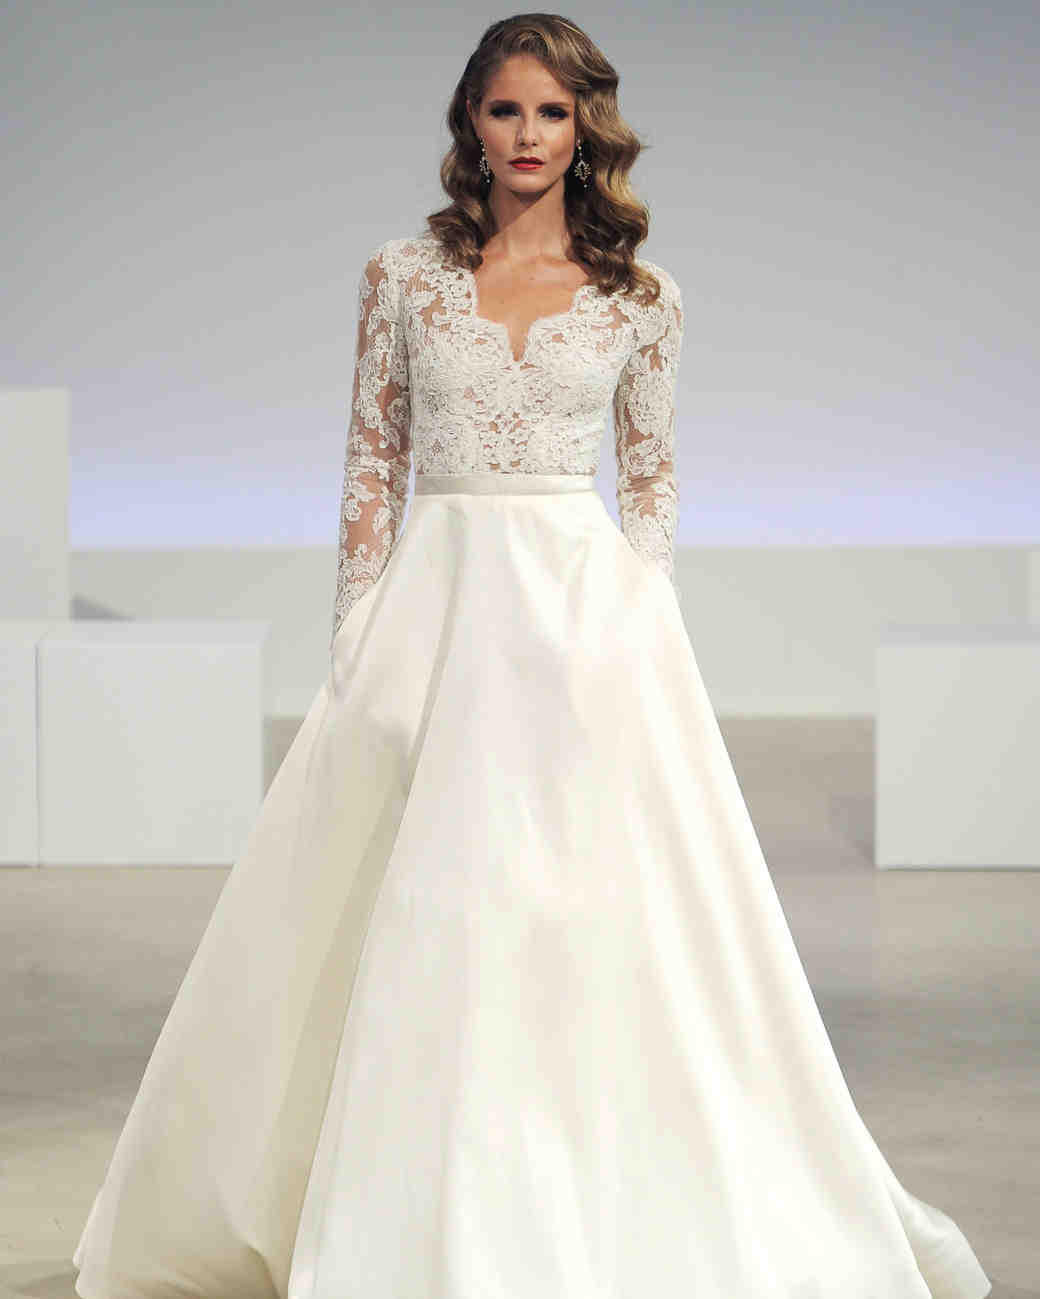 Wedding Dresess: Long-Sleeve Wedding Dresses We Love